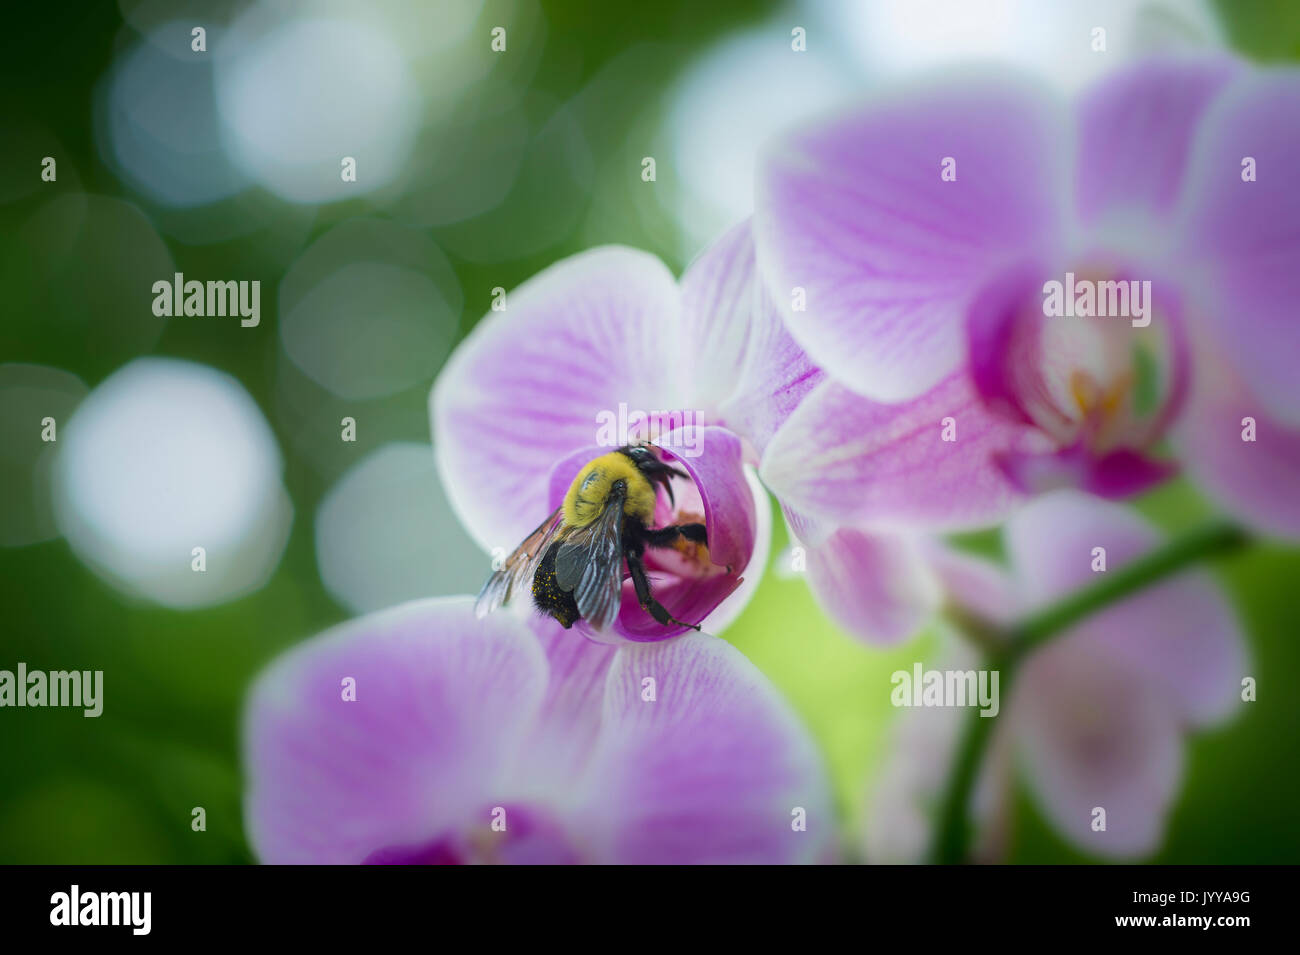 Bee Pollinating Pink Orchid Flower - Stock Image